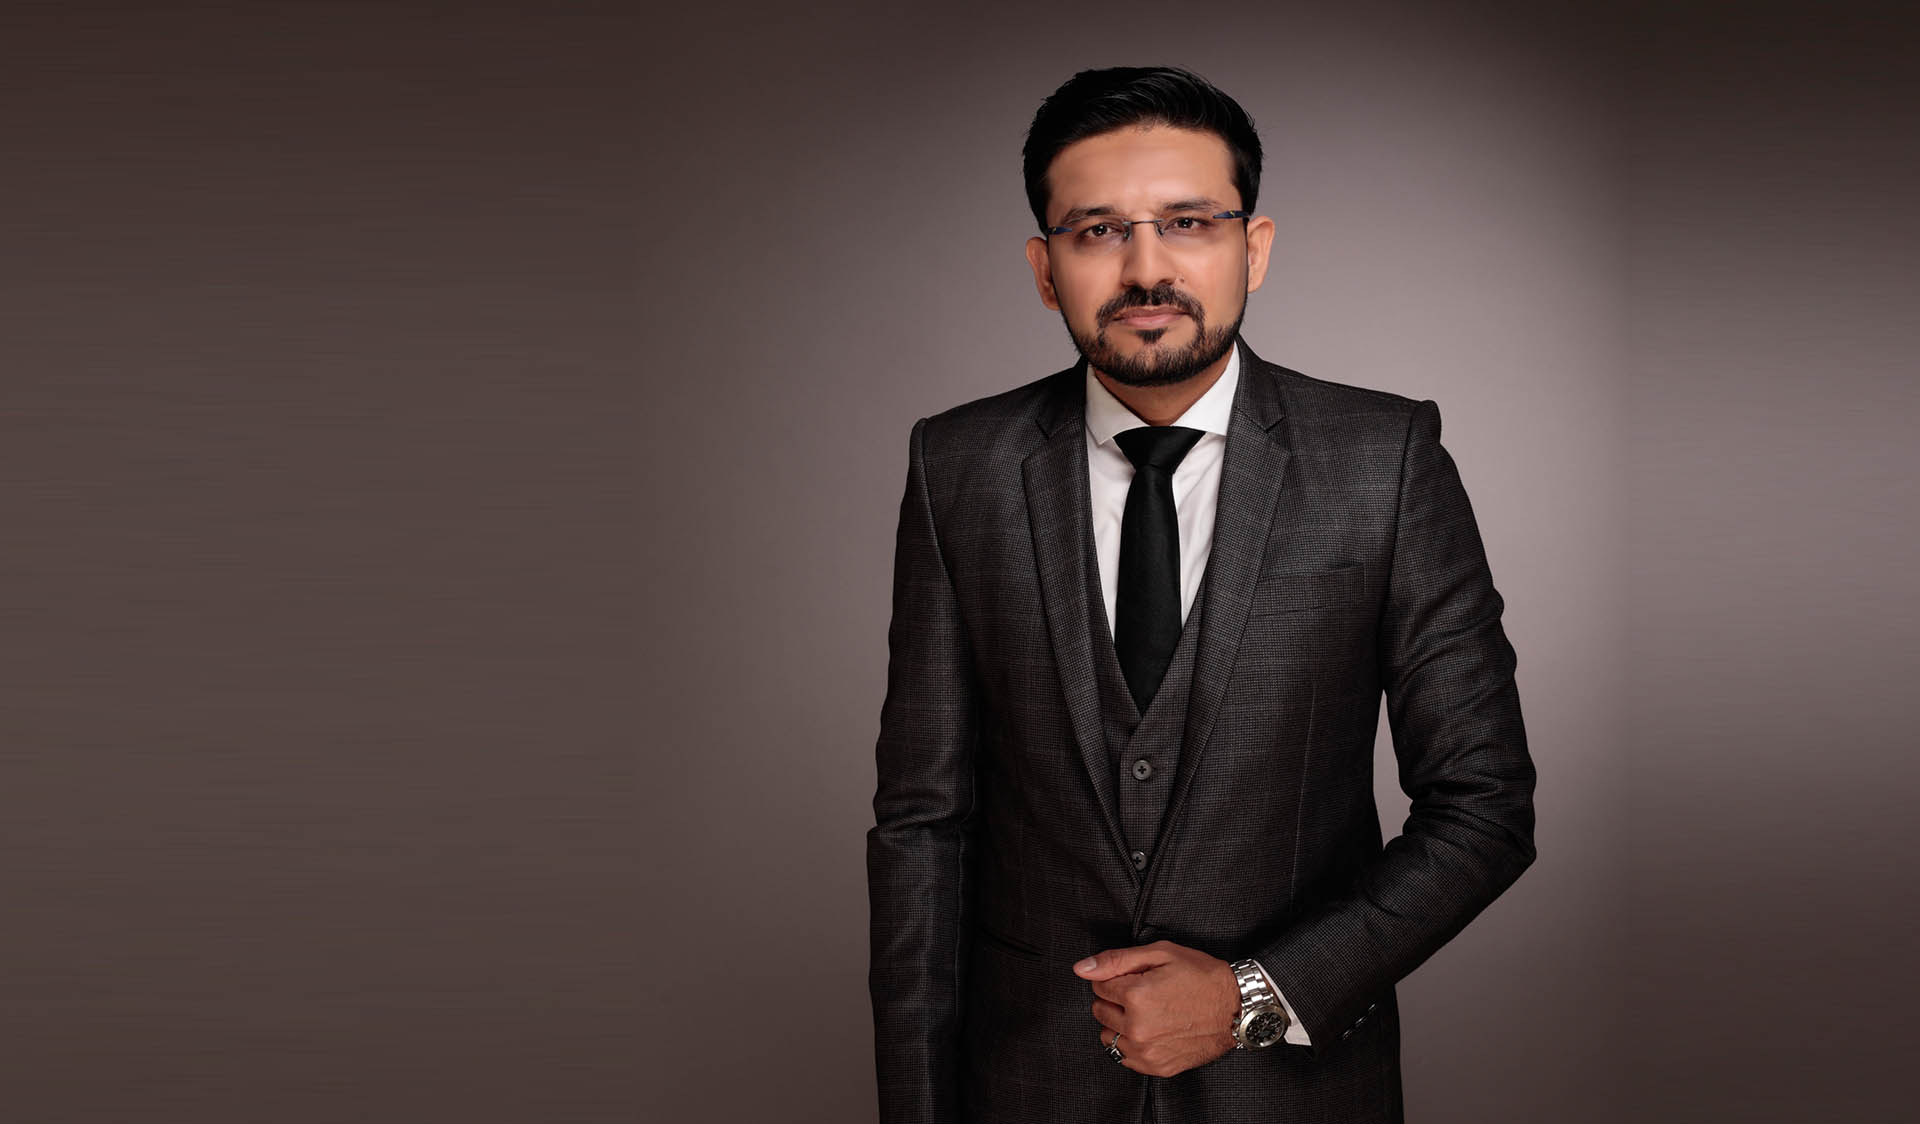 Ethics is closely tied to success: Ali Merchant, Founder and CEO, AM Infoweb